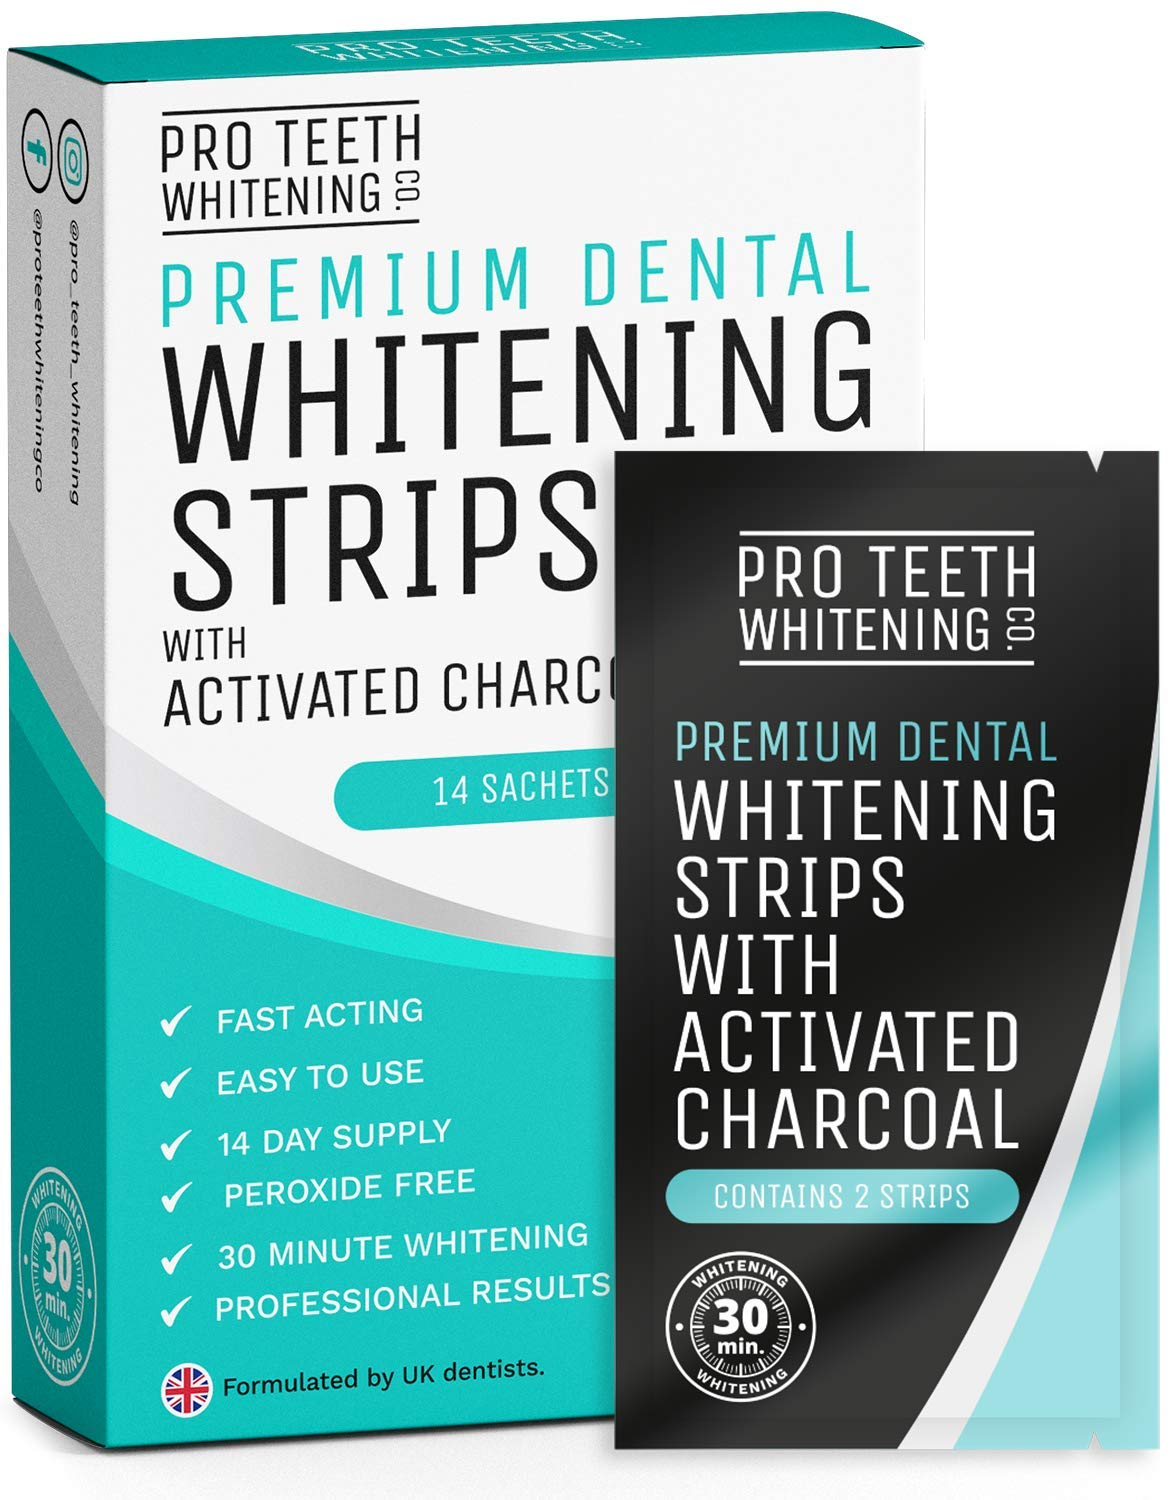 Teeth Whitening Strips with Activated Charcoal | 28 Peroxide-Free Teeth Whitening Strips (14 Upper + 14 Lower) | Fast-Acting Teeth Whitening Kit Formulated by UK Dentists for Pro Teeth Whitening Co. ® product image